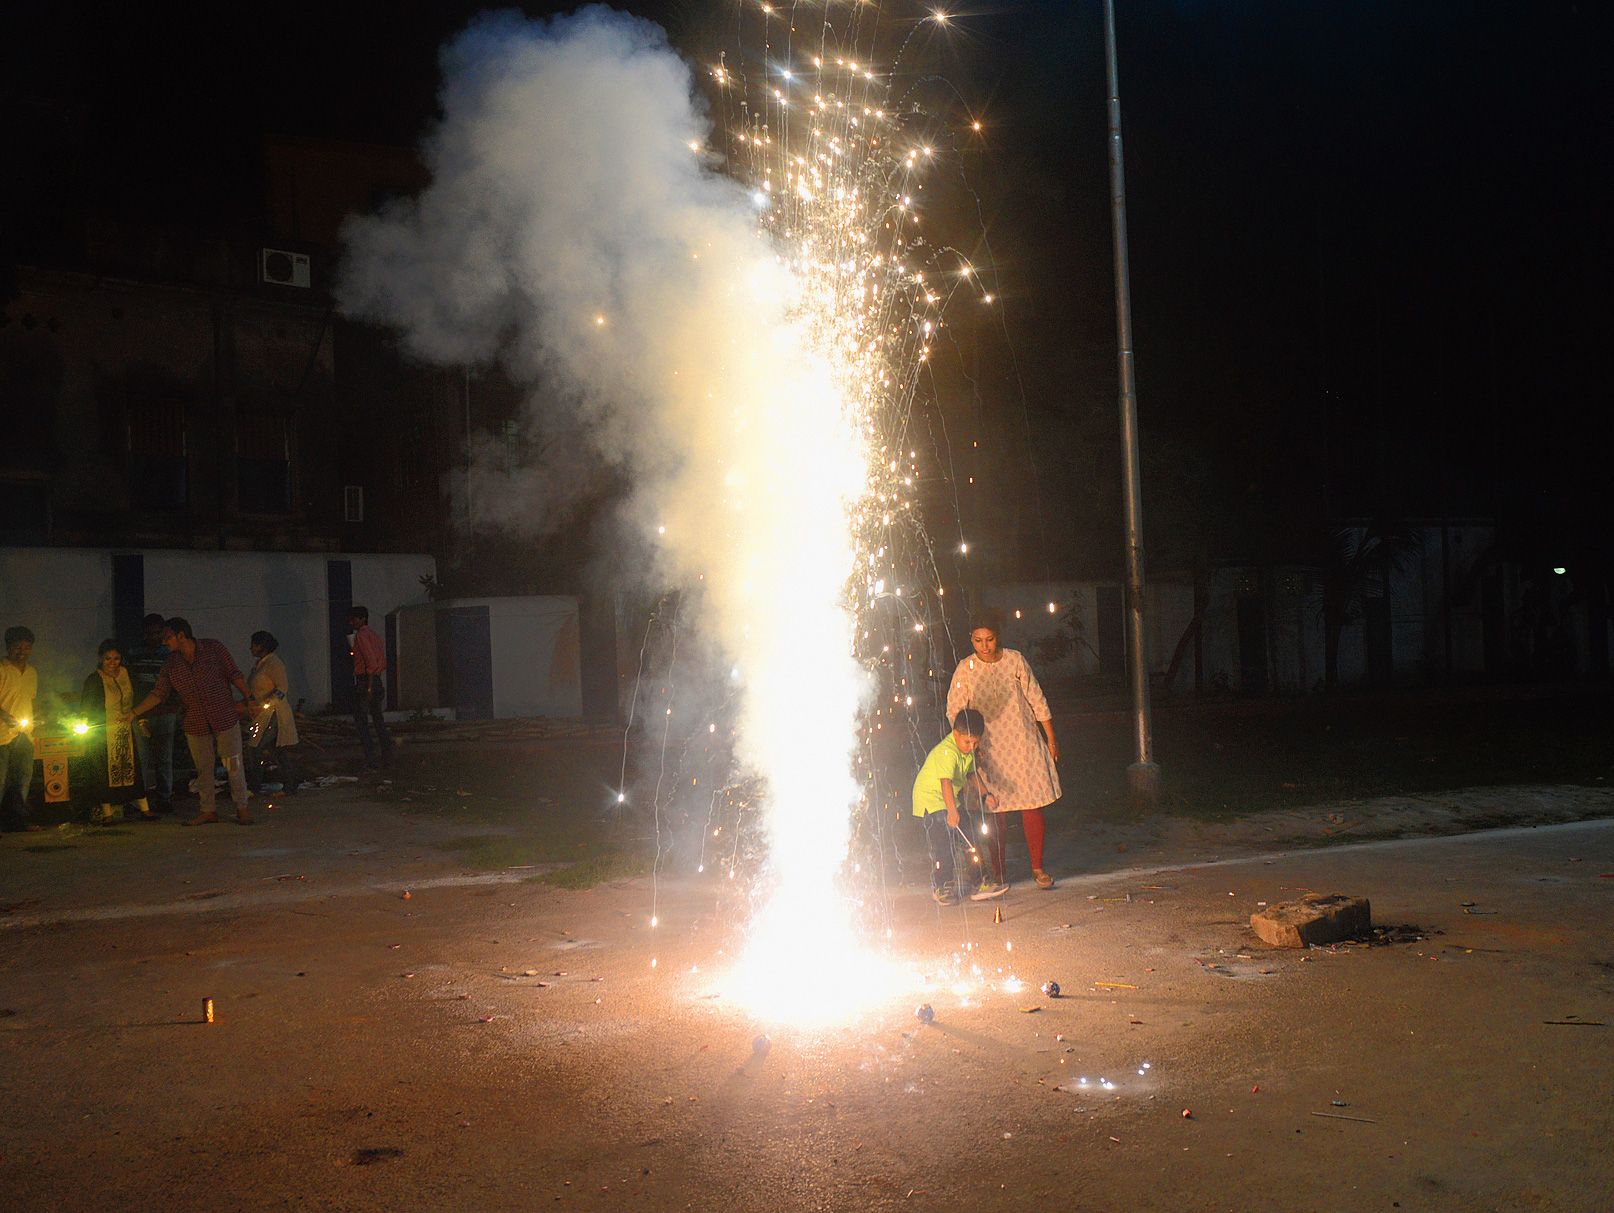 A woman and child light firecrackers in Bagbazar at 9.41pm on Tuesday.